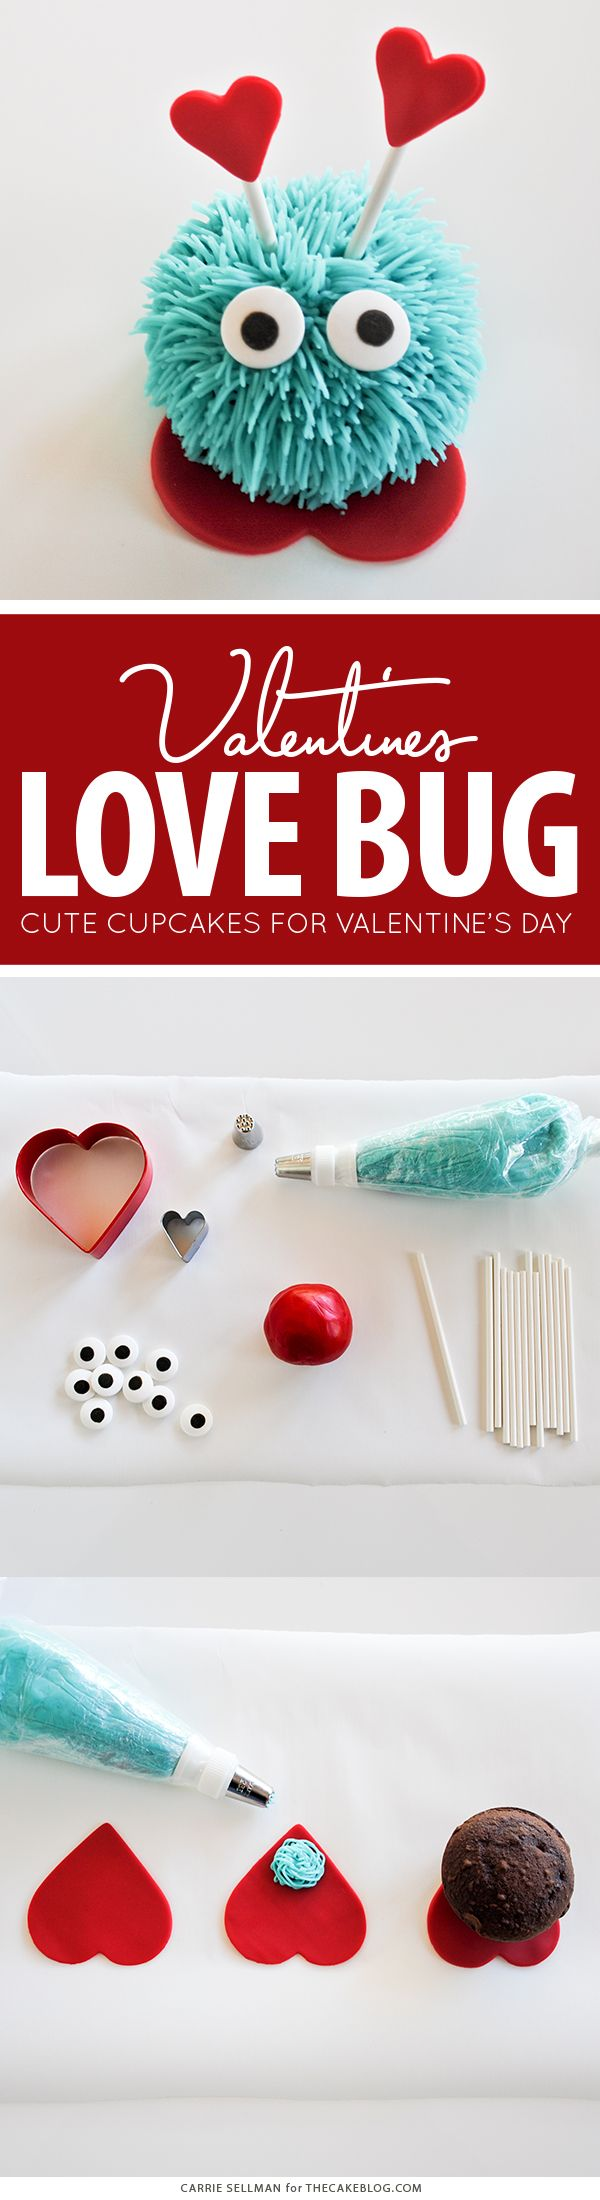 Love Bug Cupcakes - a fun Valentines Day dessert for kids | by Carrie Sellman for TheCakeBlog.com